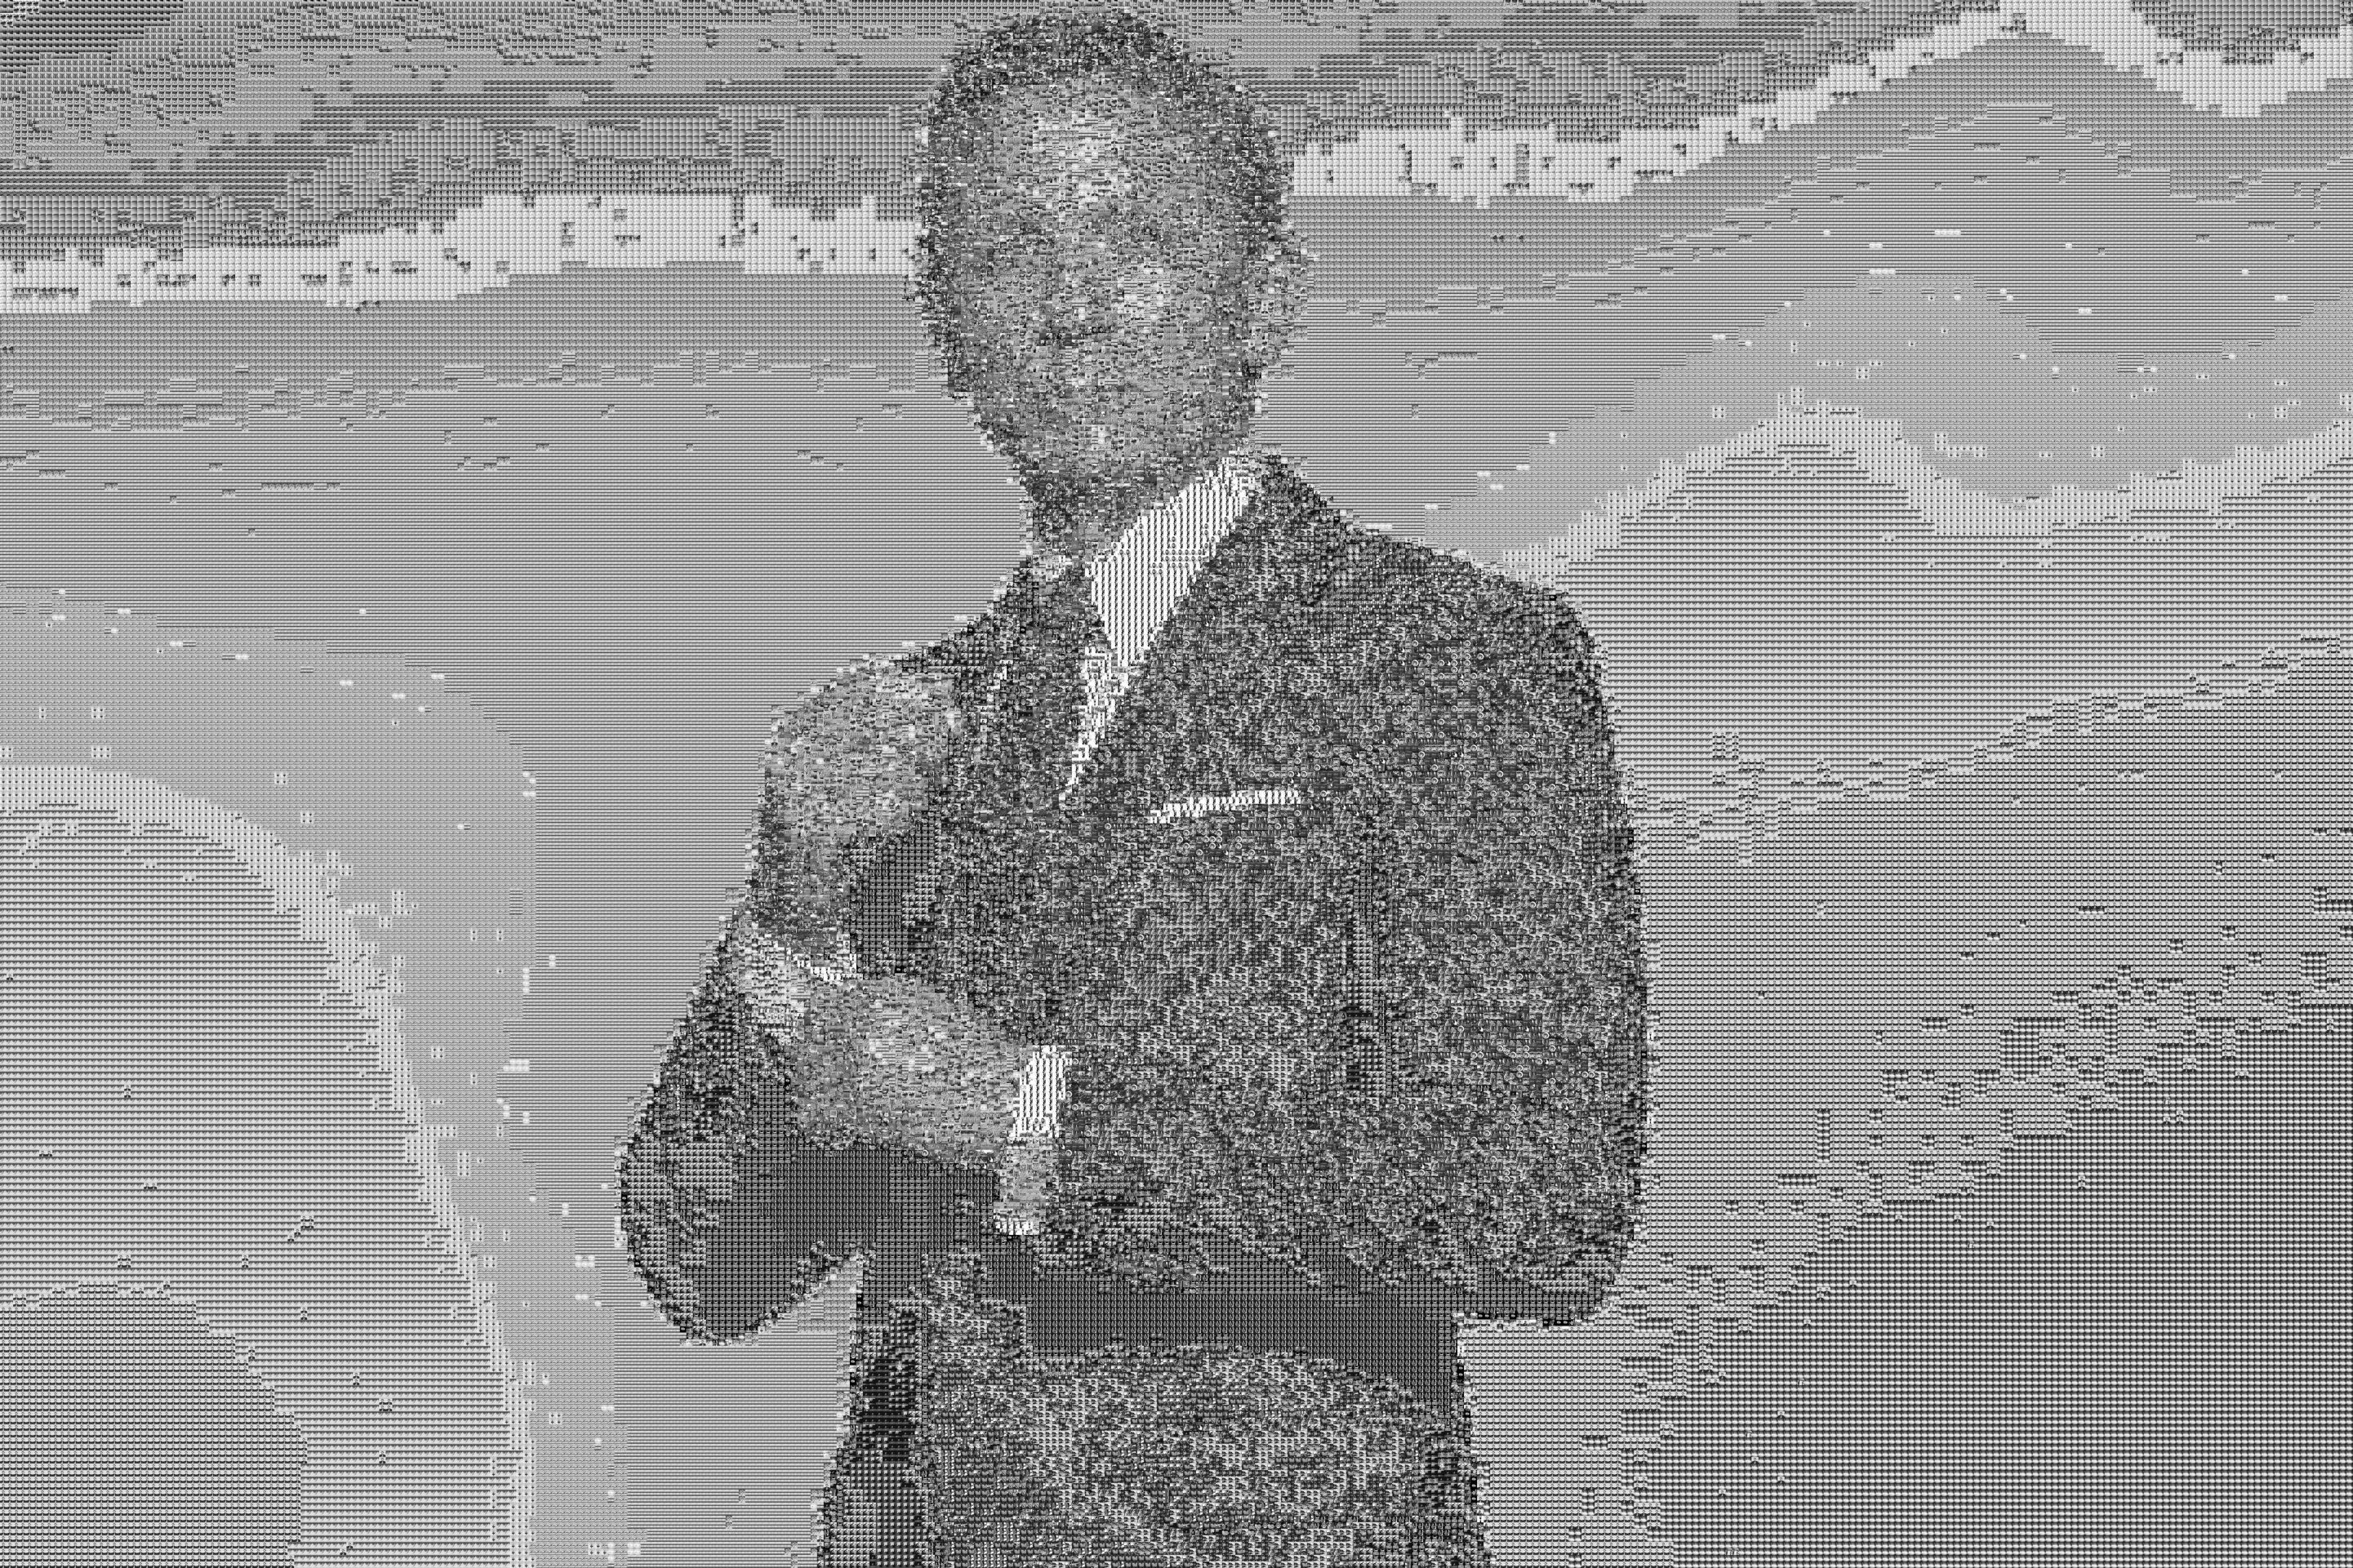 bond3 grayscale mosaic examples